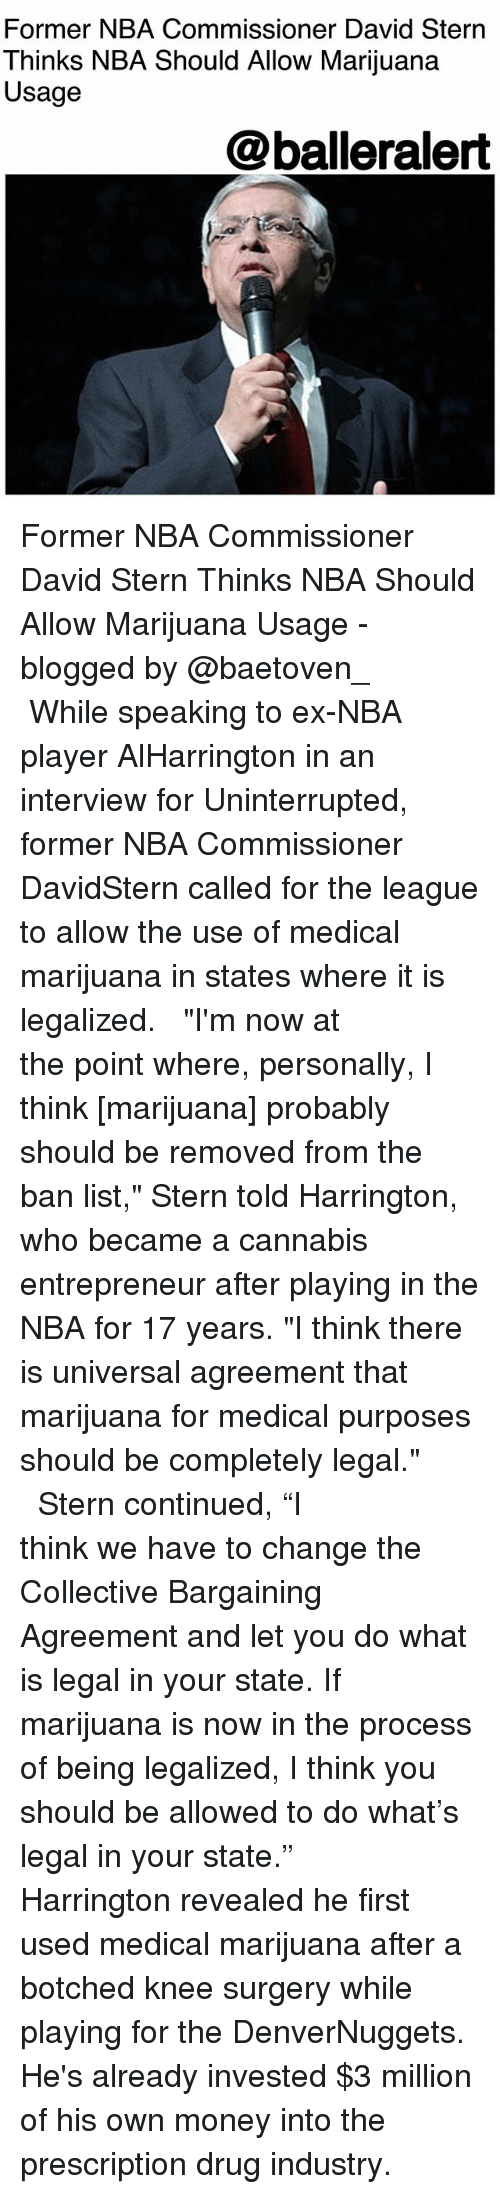 """botched: Former NBA Commissioner David Stern  Thinks NBA Should Allow Marijuana  Usage  @balleralert Former NBA Commissioner David Stern Thinks NBA Should Allow Marijuana Usage - blogged by @baetoven_ ⠀⠀⠀⠀⠀⠀⠀ ⠀⠀⠀⠀⠀⠀⠀ While speaking to ex-NBA player AlHarrington in an interview for Uninterrupted, former NBA Commissioner DavidStern called for the league to allow the use of medical marijuana in states where it is legalized. ⠀⠀⠀⠀⠀⠀⠀ ⠀⠀⠀⠀⠀⠀⠀ """"I'm now at the point where, personally, I think [marijuana] probably should be removed from the ban list,"""" Stern told Harrington, who became a cannabis entrepreneur after playing in the NBA for 17 years. """"I think there is universal agreement that marijuana for medical purposes should be completely legal."""" ⠀⠀⠀⠀⠀⠀⠀ ⠀⠀⠀⠀⠀⠀⠀ Stern continued, """"I think we have to change the Collective Bargaining Agreement and let you do what is legal in your state. If marijuana is now in the process of being legalized, I think you should be allowed to do what's legal in your state."""" ⠀⠀⠀⠀⠀⠀⠀ ⠀⠀⠀⠀⠀⠀⠀ Harrington revealed he first used medical marijuana after a botched knee surgery while playing for the DenverNuggets. He's already invested $3 million of his own money into the prescription drug industry."""